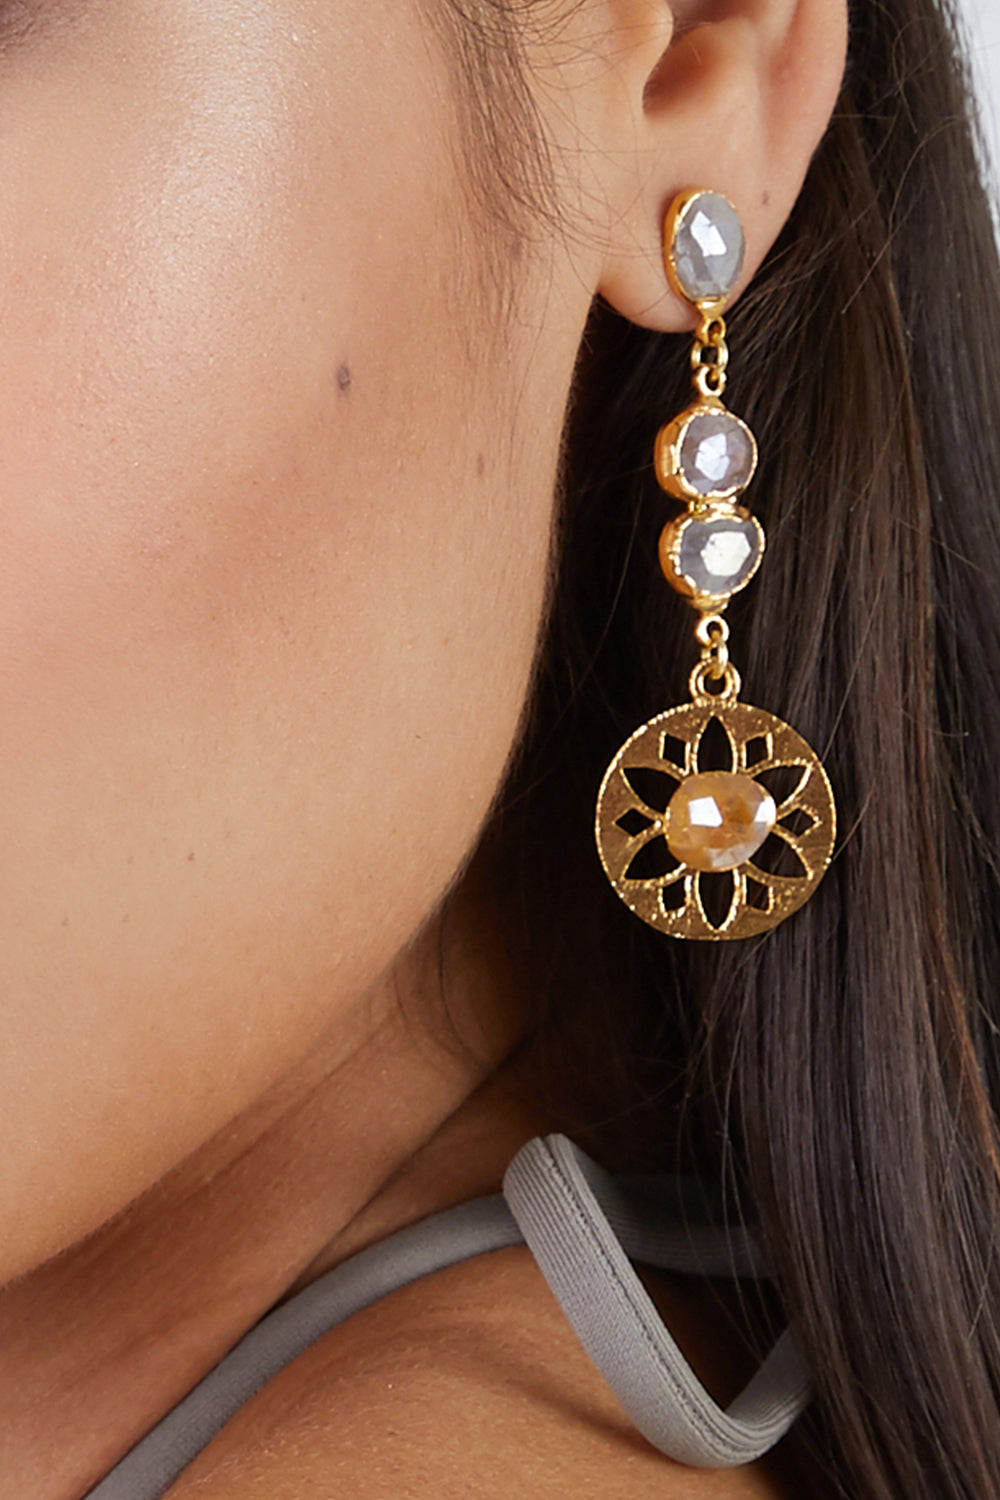 0d0618980 ... LUX DIVINE Olympia Earrings - Pink/Yellow - undefined undefined